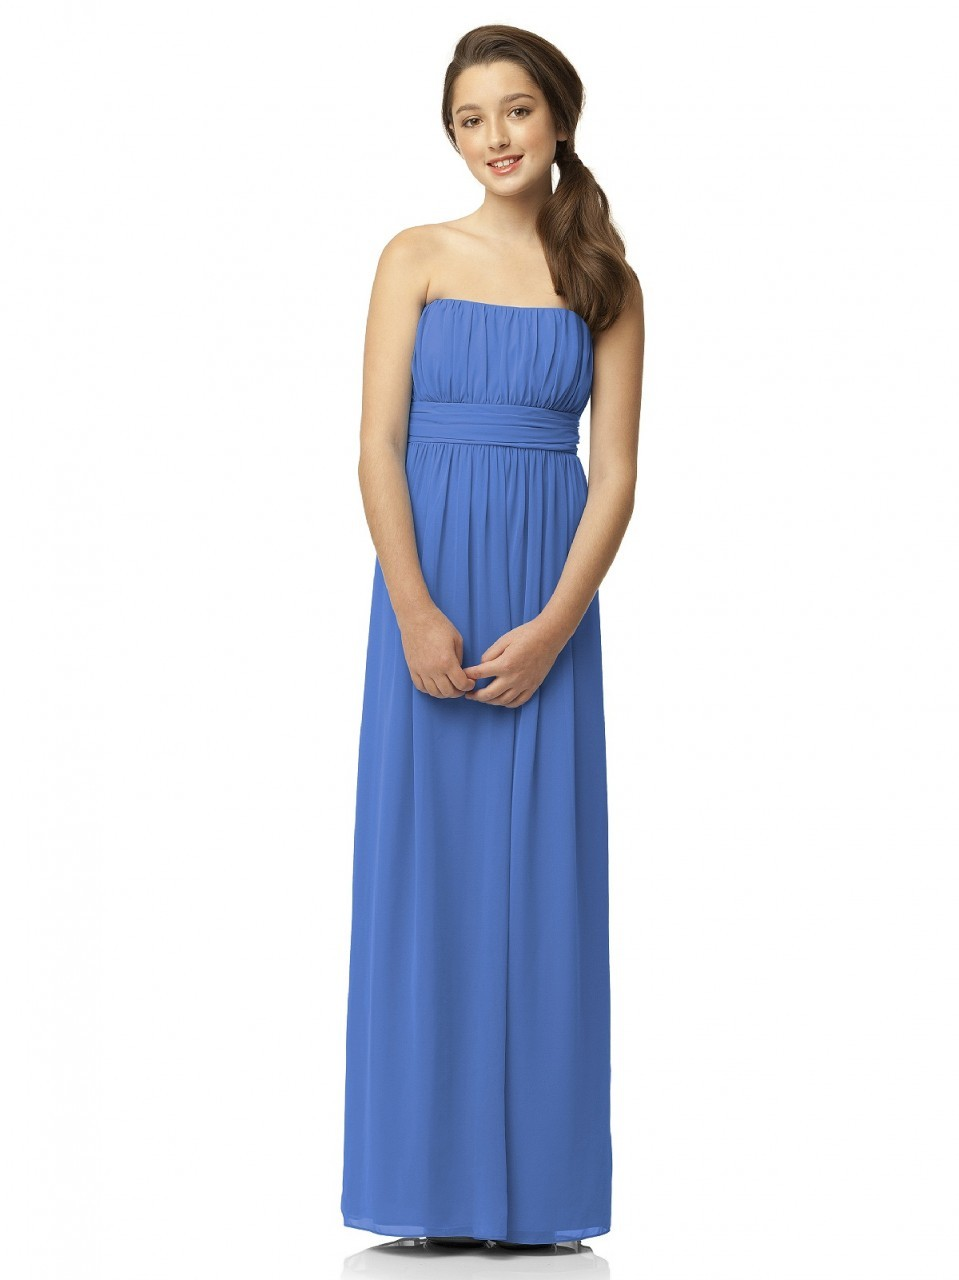 Dessy Girls Junior Bridesmaid Dresses - Junior Bridesmaids